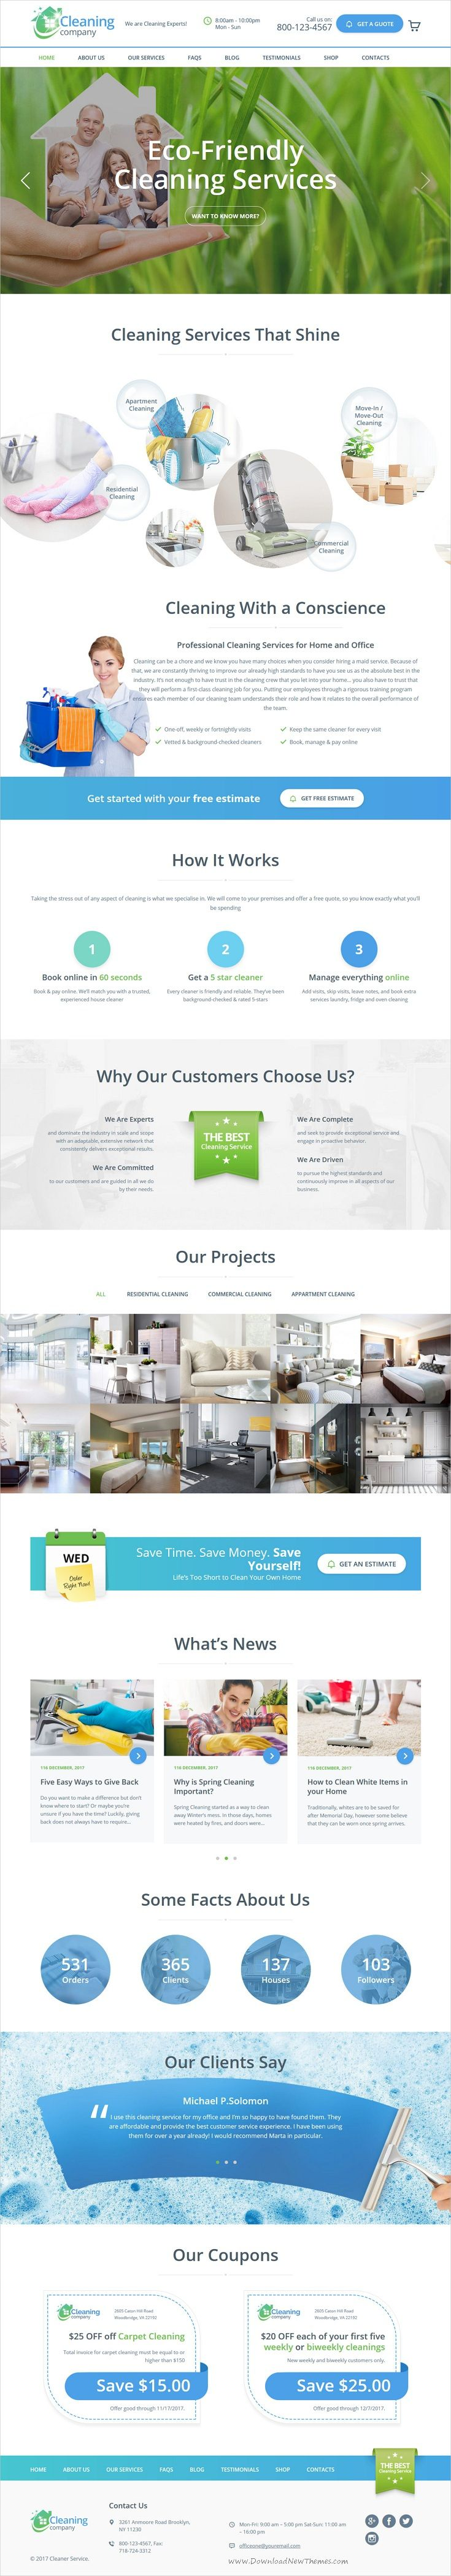 Carpet cleaning receipt joy studio design gallery best design - Cleaning Services Wordpress Theme Rtl Professional And Beautifully Design